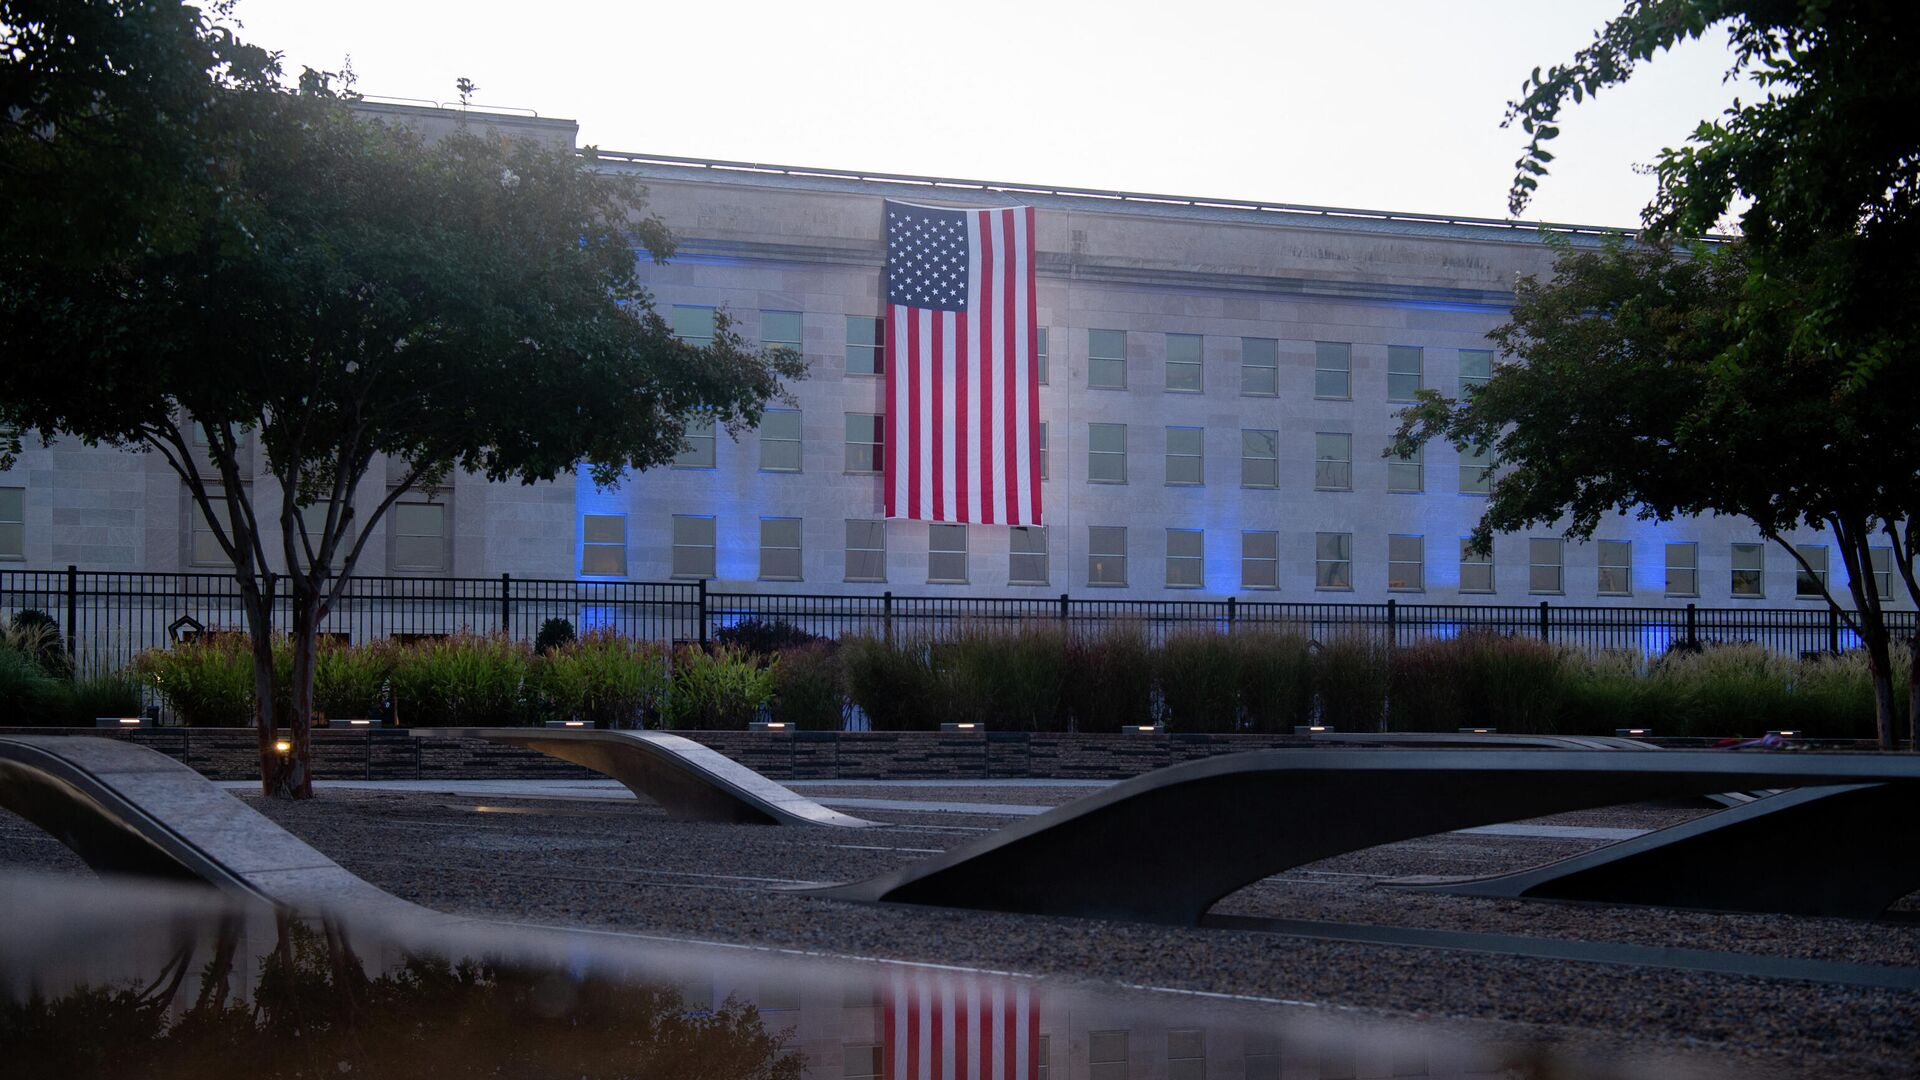 An American flag hangs from the side of the Pentagon to commemorate the 20th anniversary of the 9/11 attacks,as seen from the Pentagon 9/11 Memorial on September 11, 2021, in Washington,DC. - Sputnik International, 1920, 11.09.2021